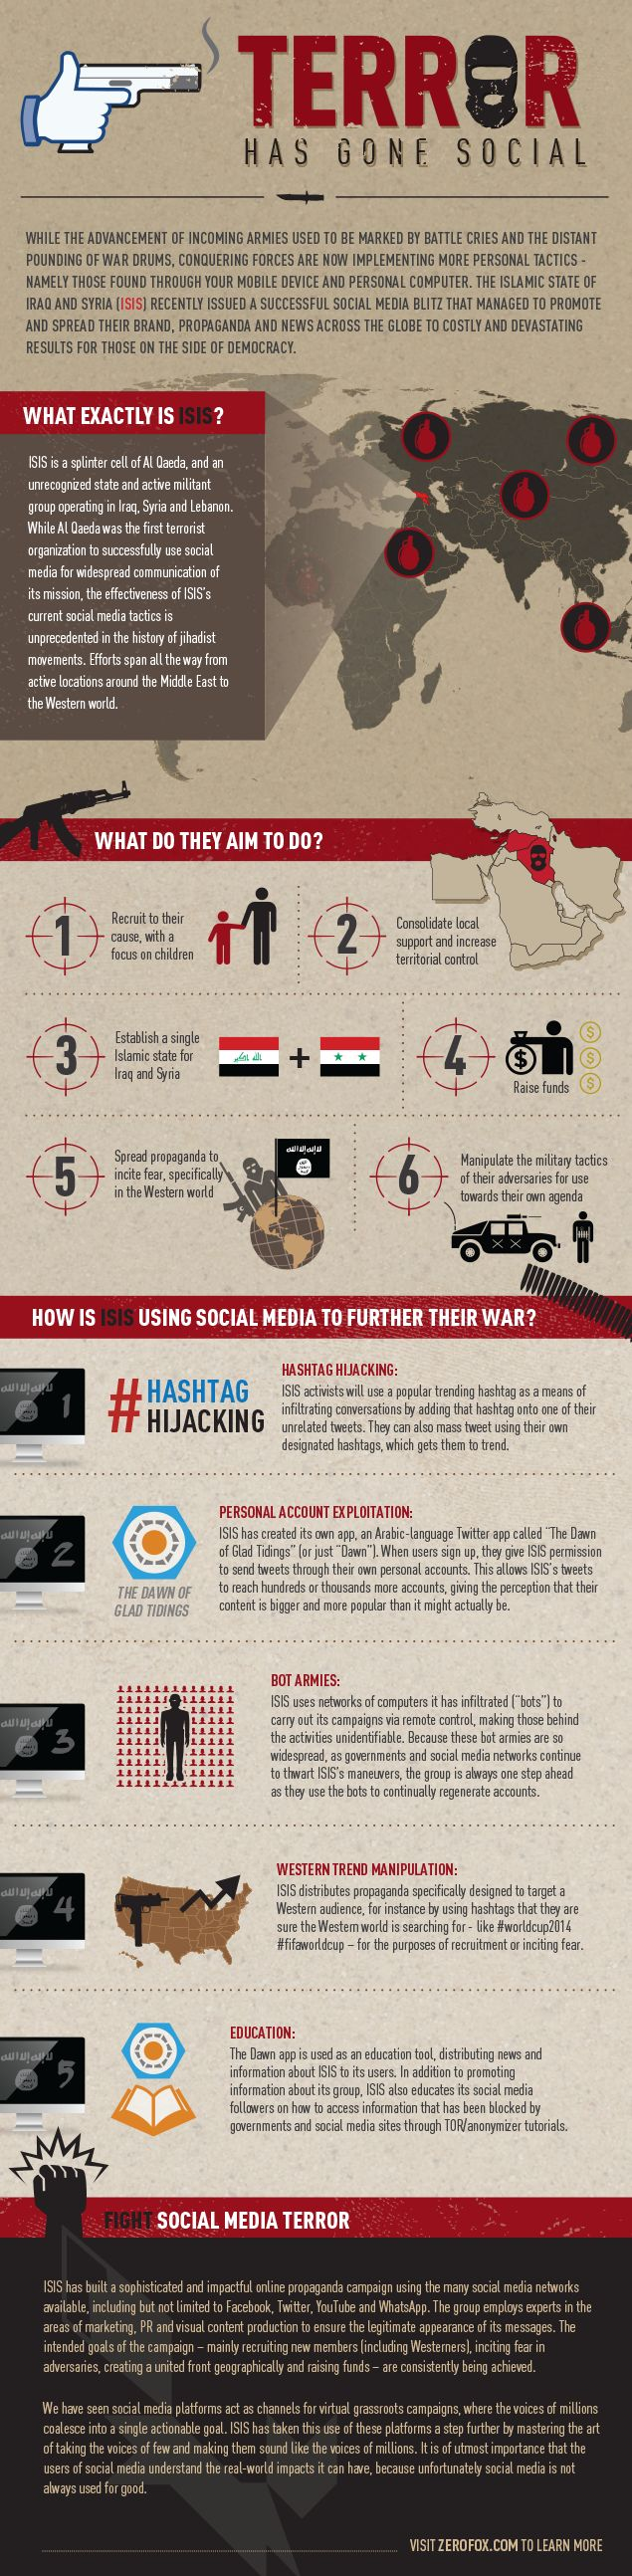 ISIS - TERROR HAS GONE SOCIAL: The Islamic State (ISIS) has built a sophisticated and impactful online propaganda campaign using many social media networks, including but not limited to Facebook, Twitter, YouTube and WhatsApp.